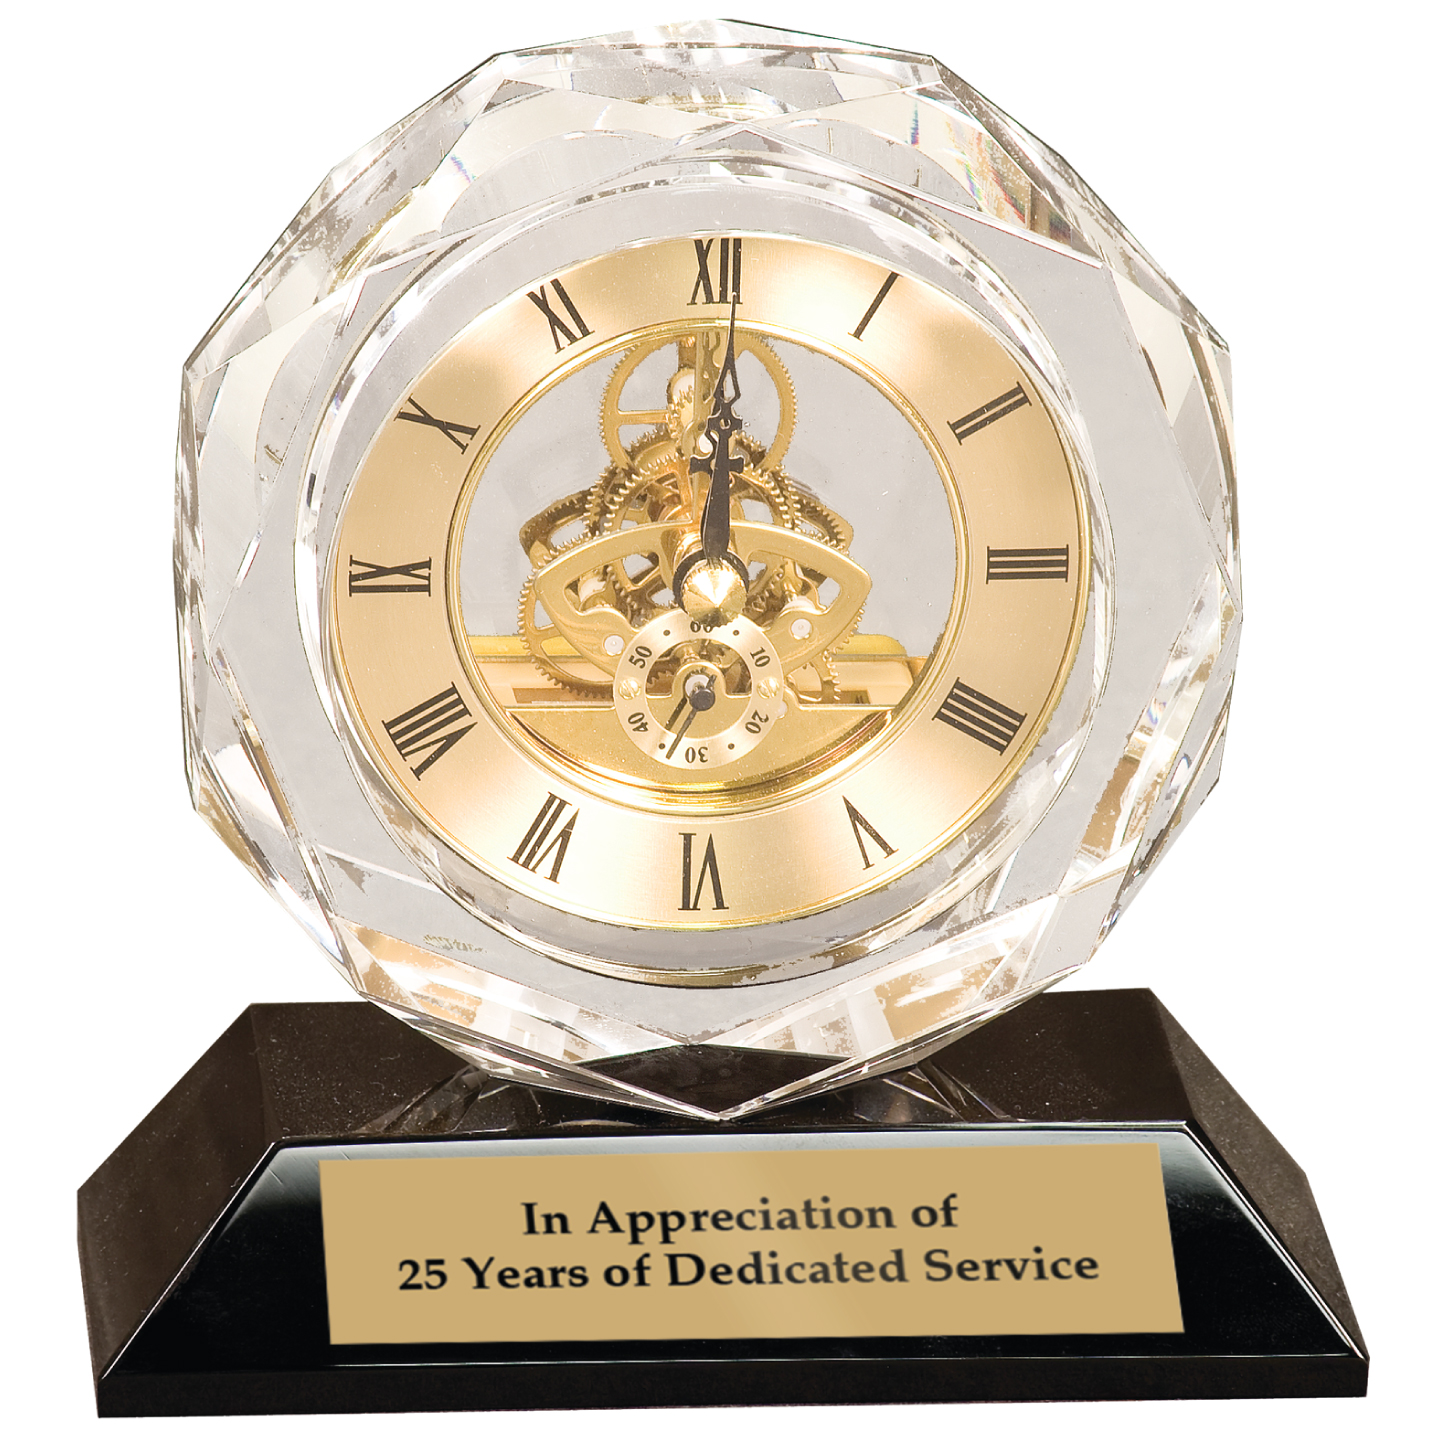 Crystal Clock on Pedestal Base Clocks, Times, Golds, Rosewoods, Pillars, Values